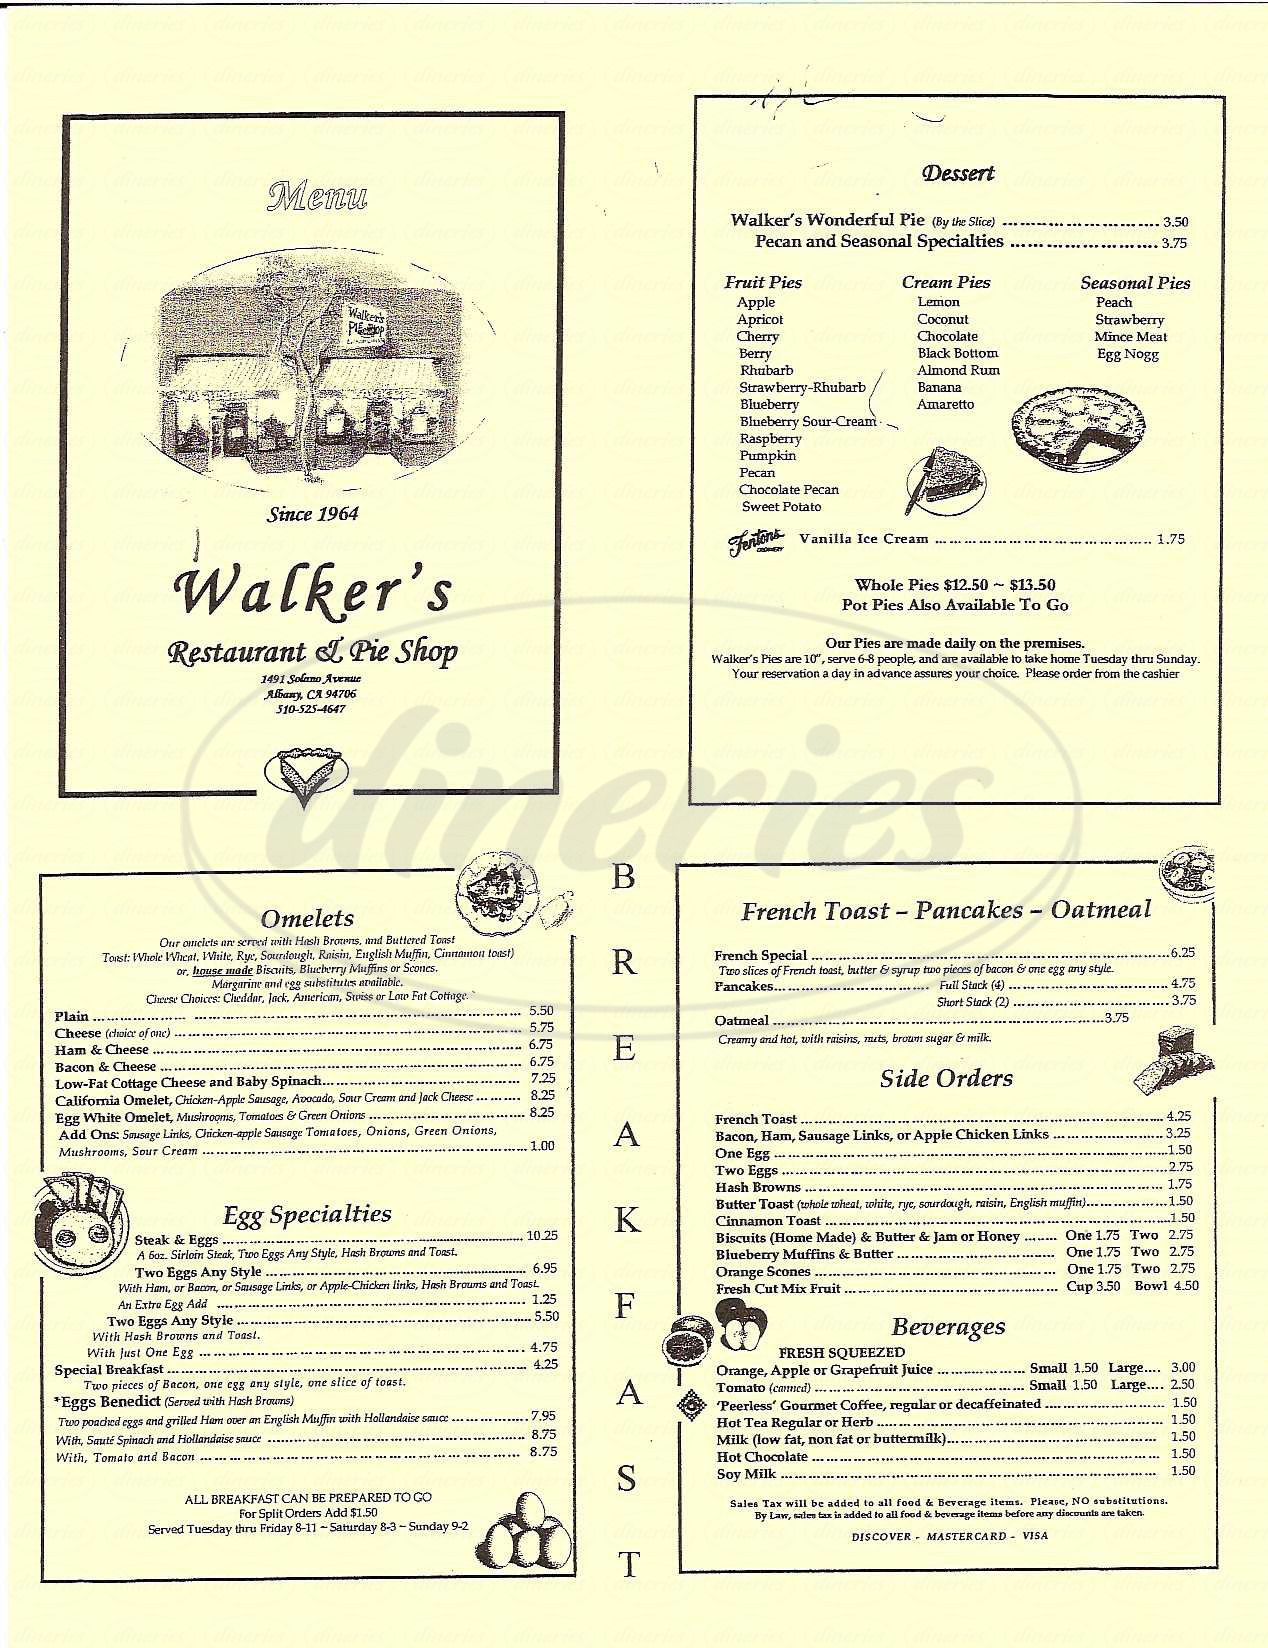 menu for Walker's Rest & Pie Shop